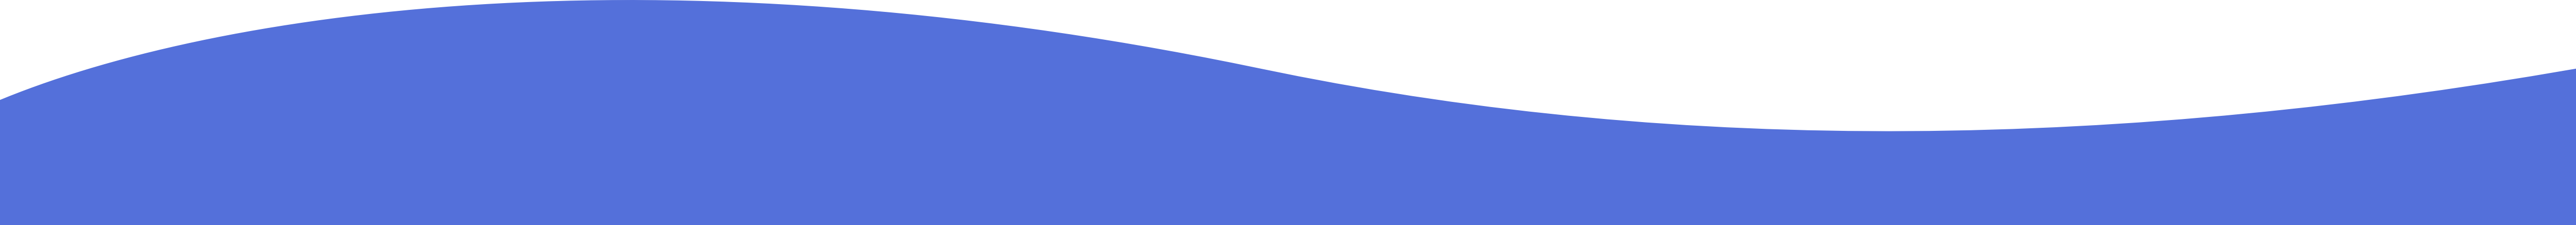 footer-curve-blue